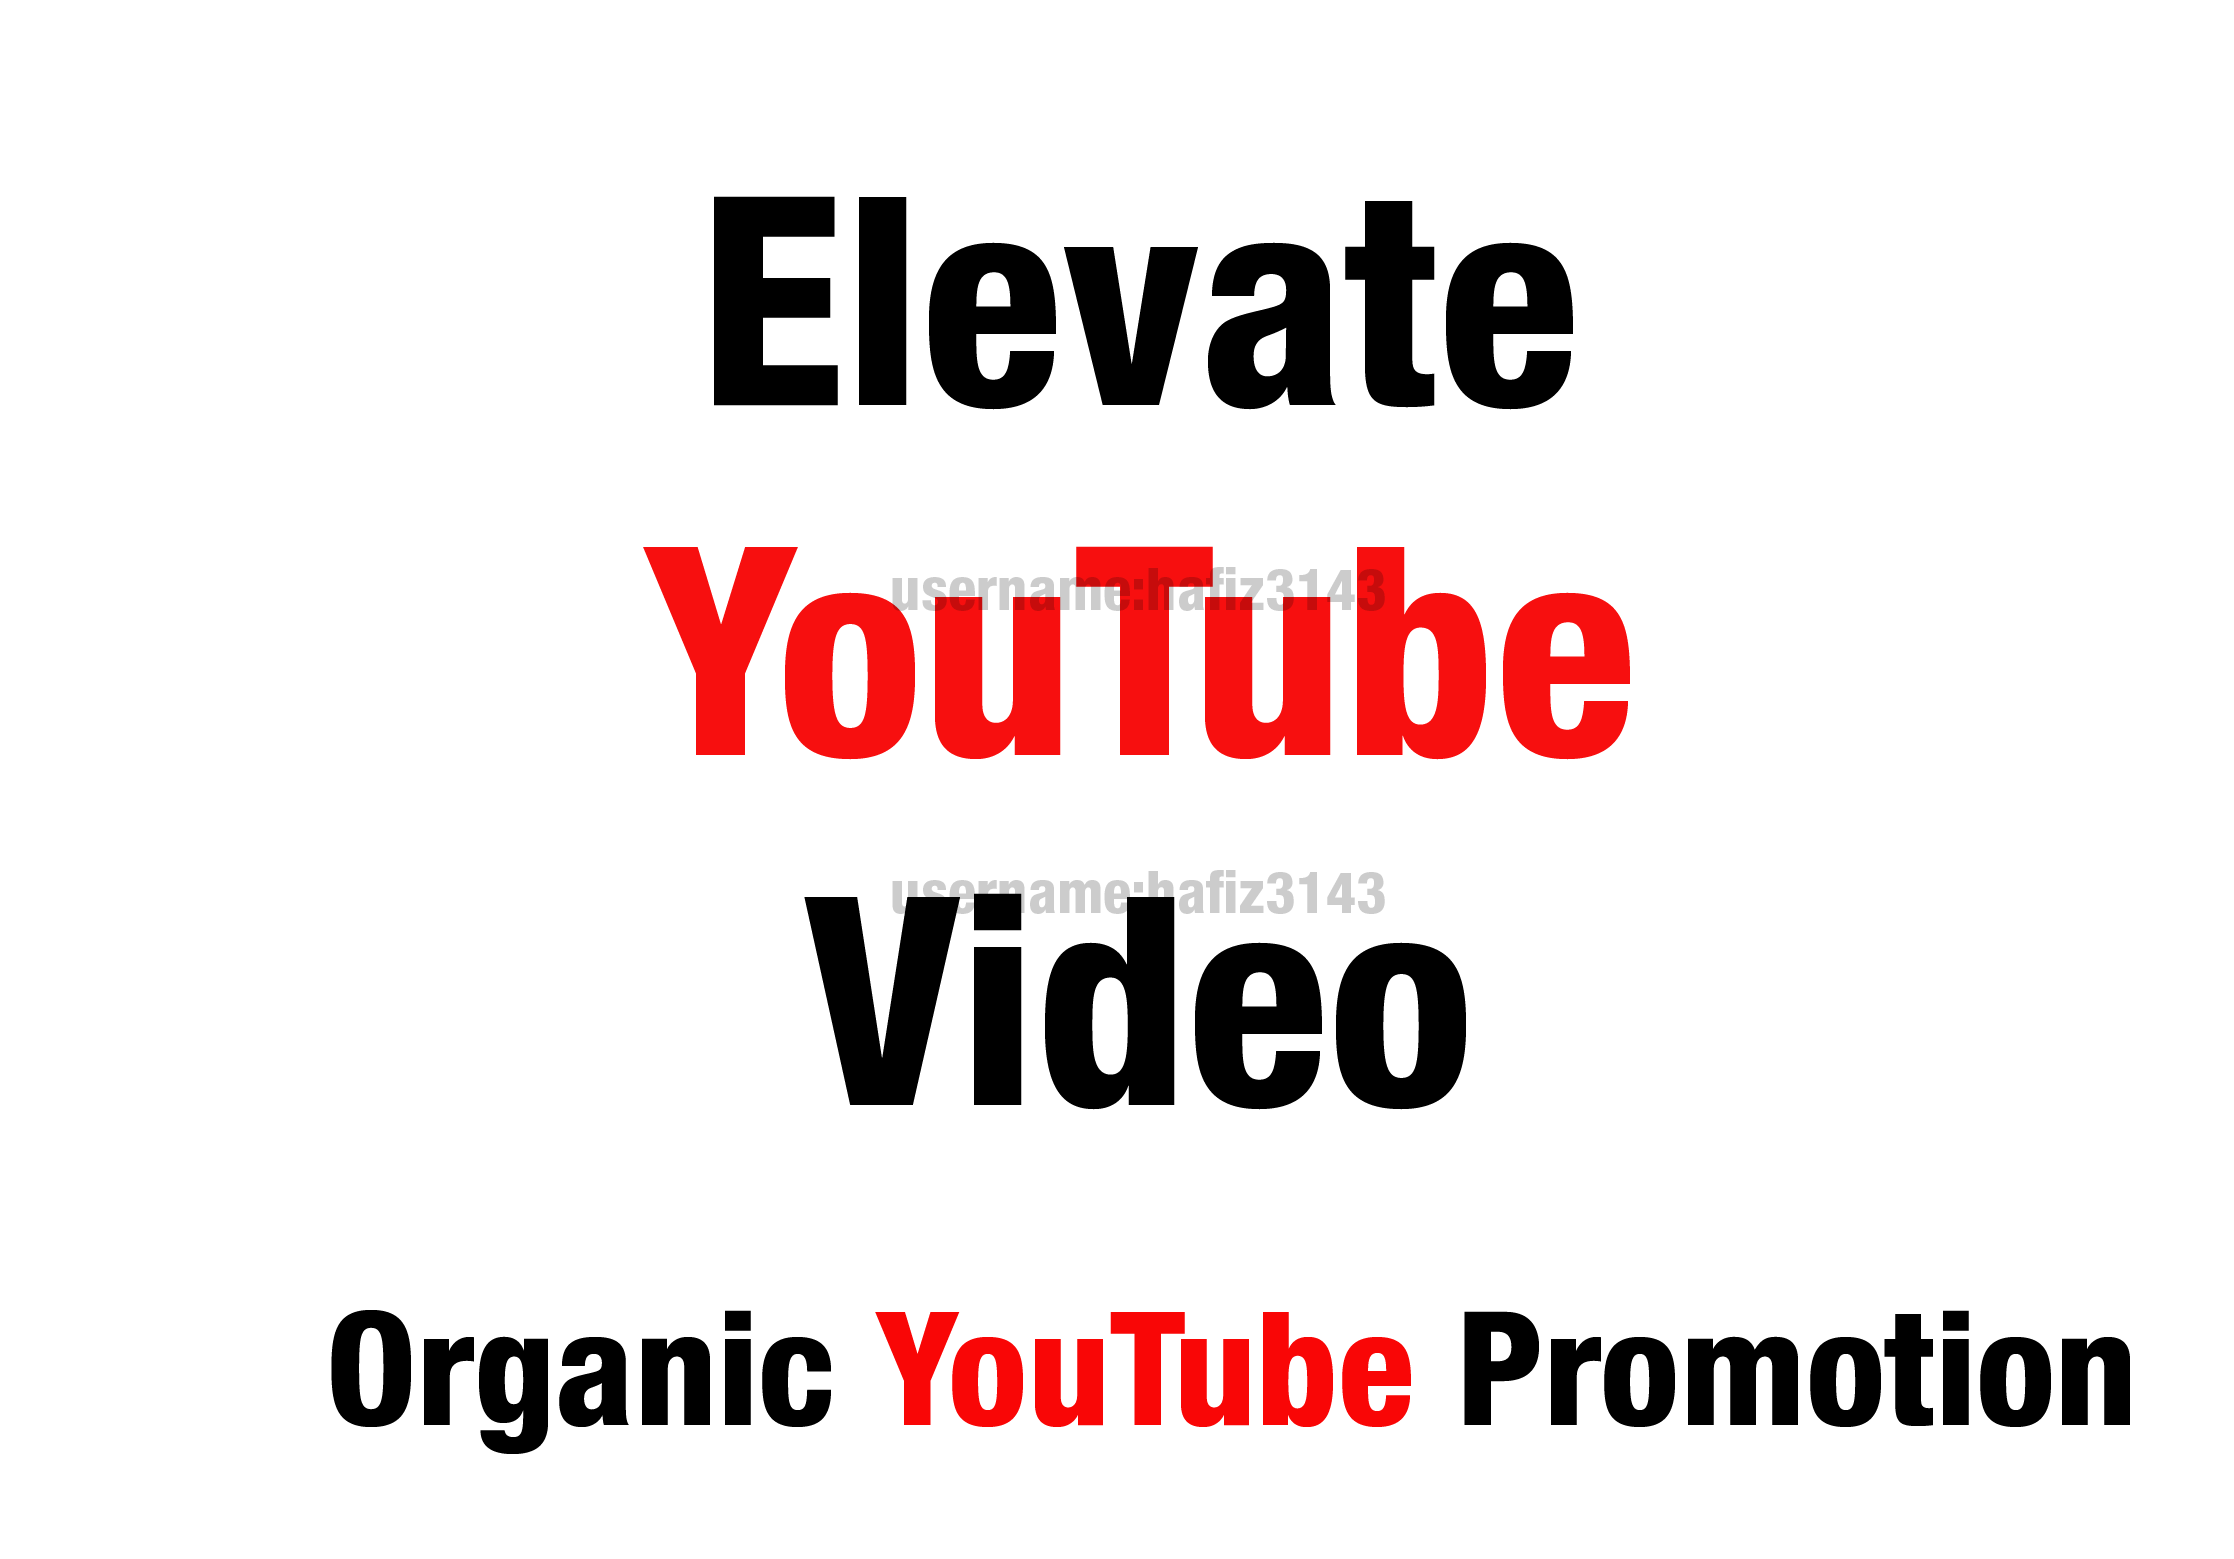 I will do organic YouTube video promotion Elevate YouTube Video